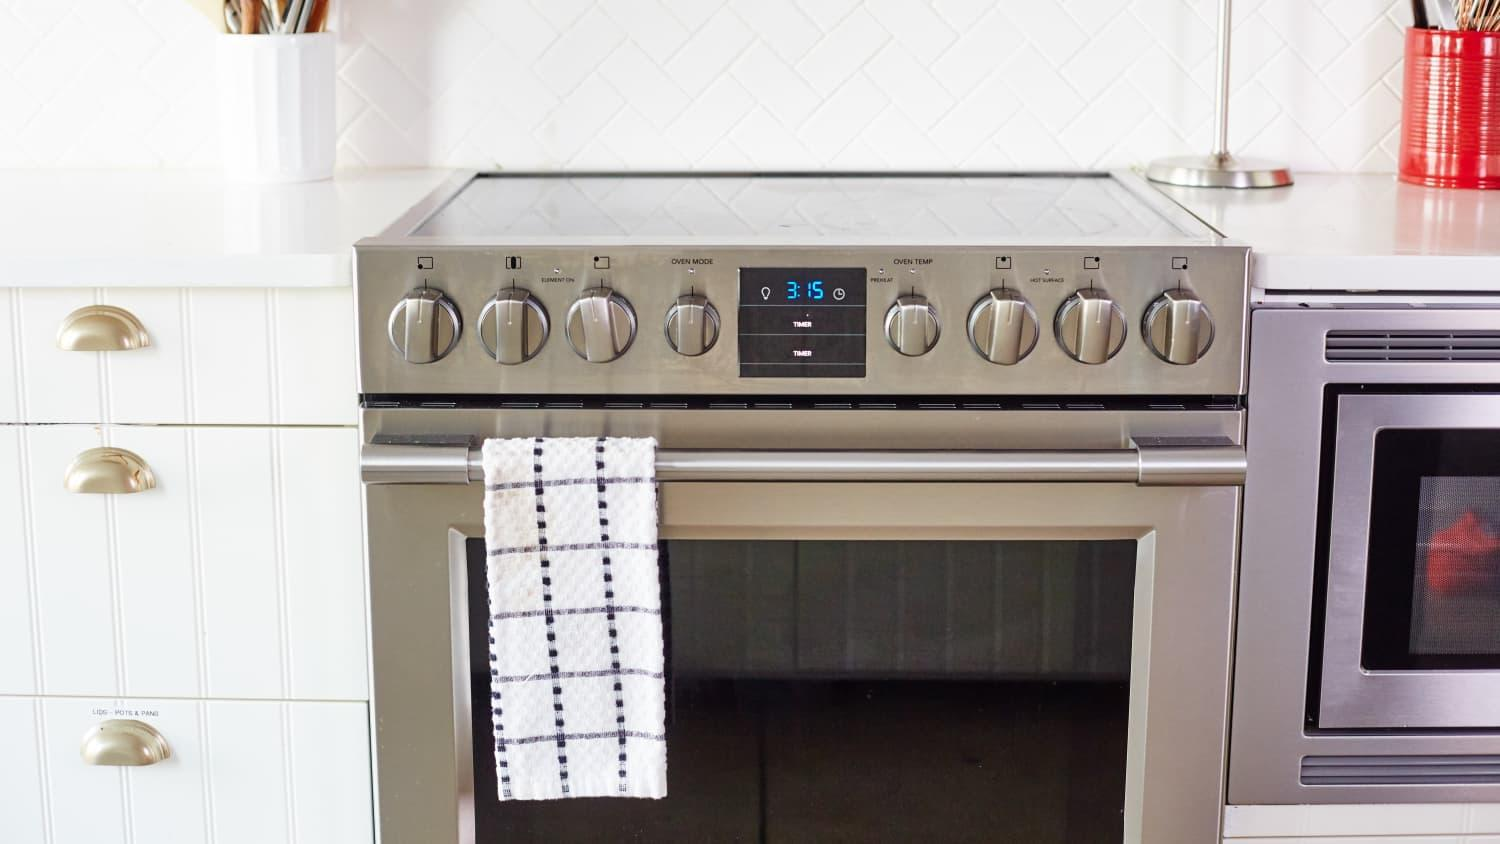 Ovens and cookers are reliable for health and safety concerns Source: thekitchn.com